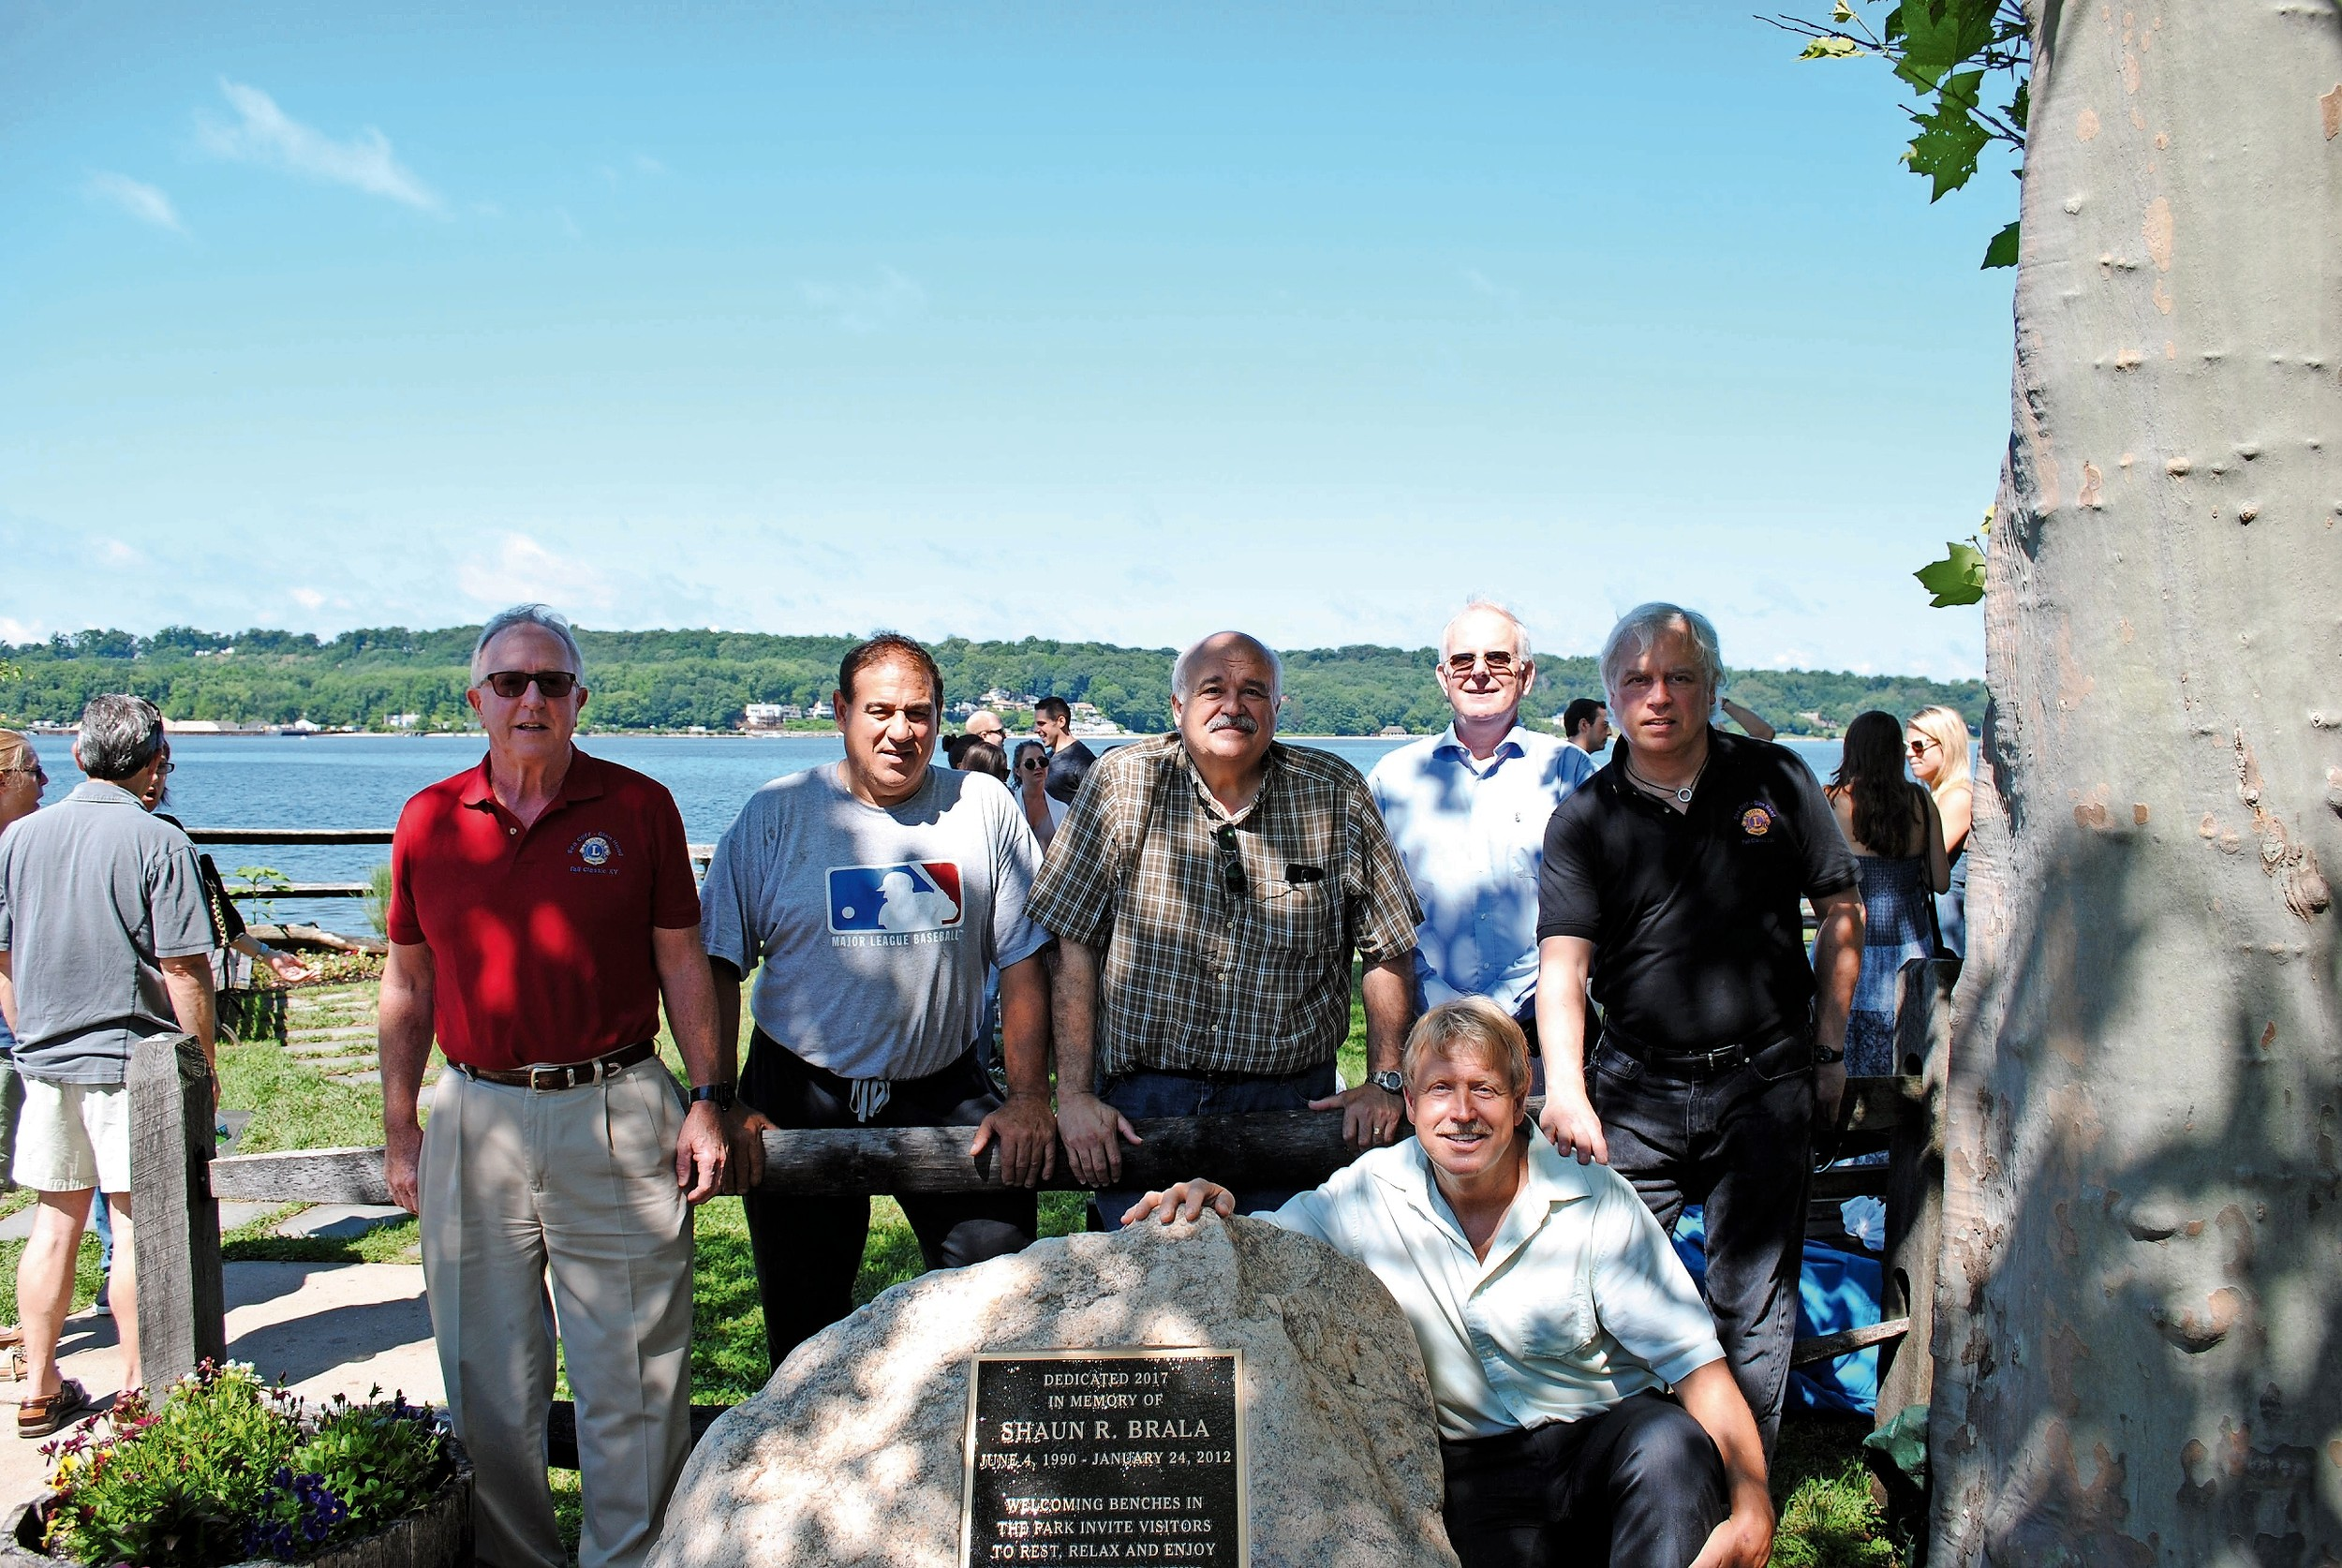 Members of the Sea Cliff-Glen Head Lions Club with John Brala during his son's plaque unveiling at Rum Point Park.